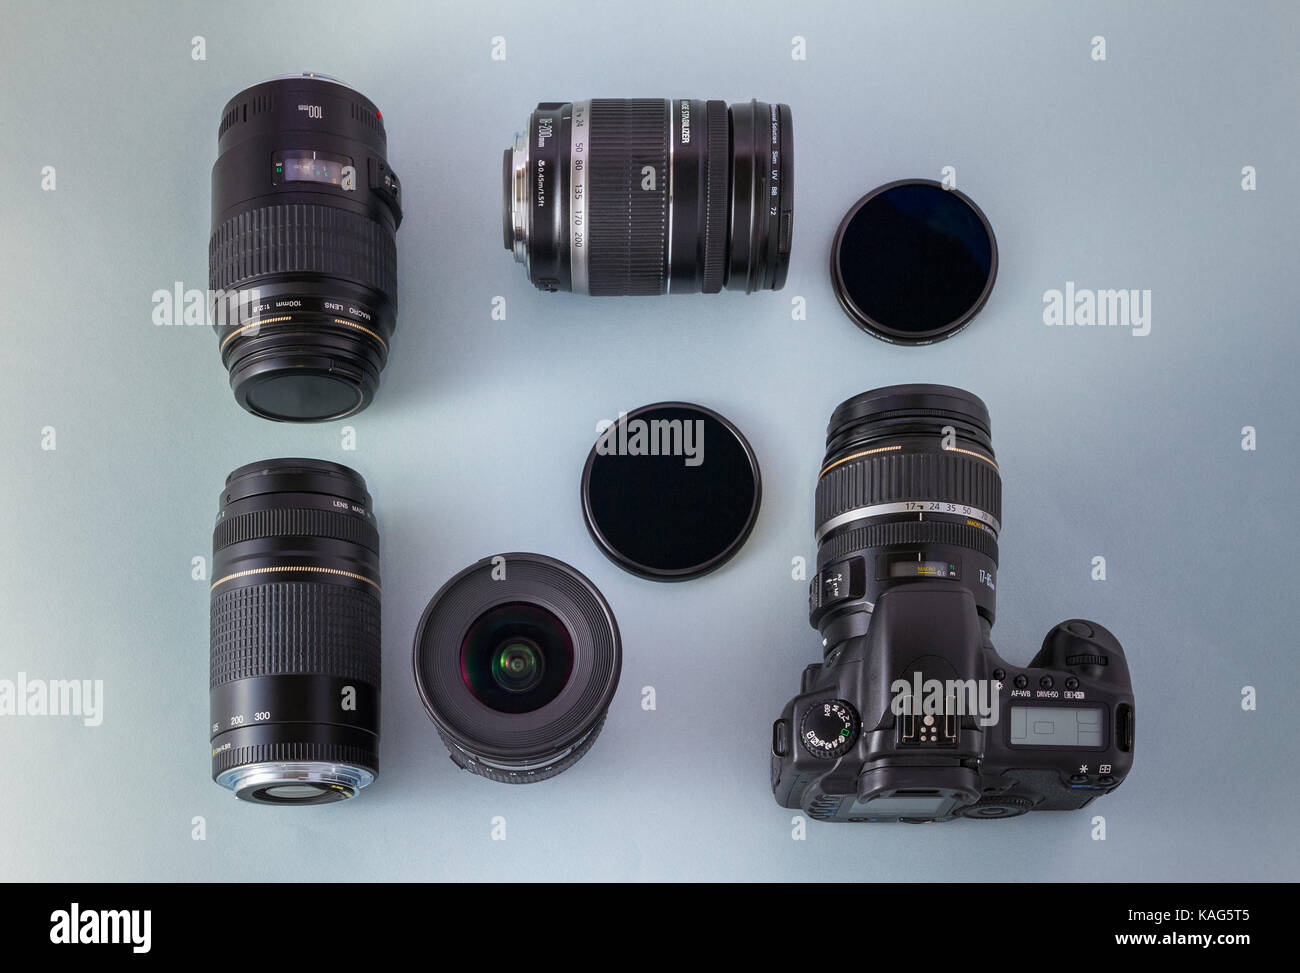 Camera and collection of camera lenses and filters on blue background, top view - Stock Image